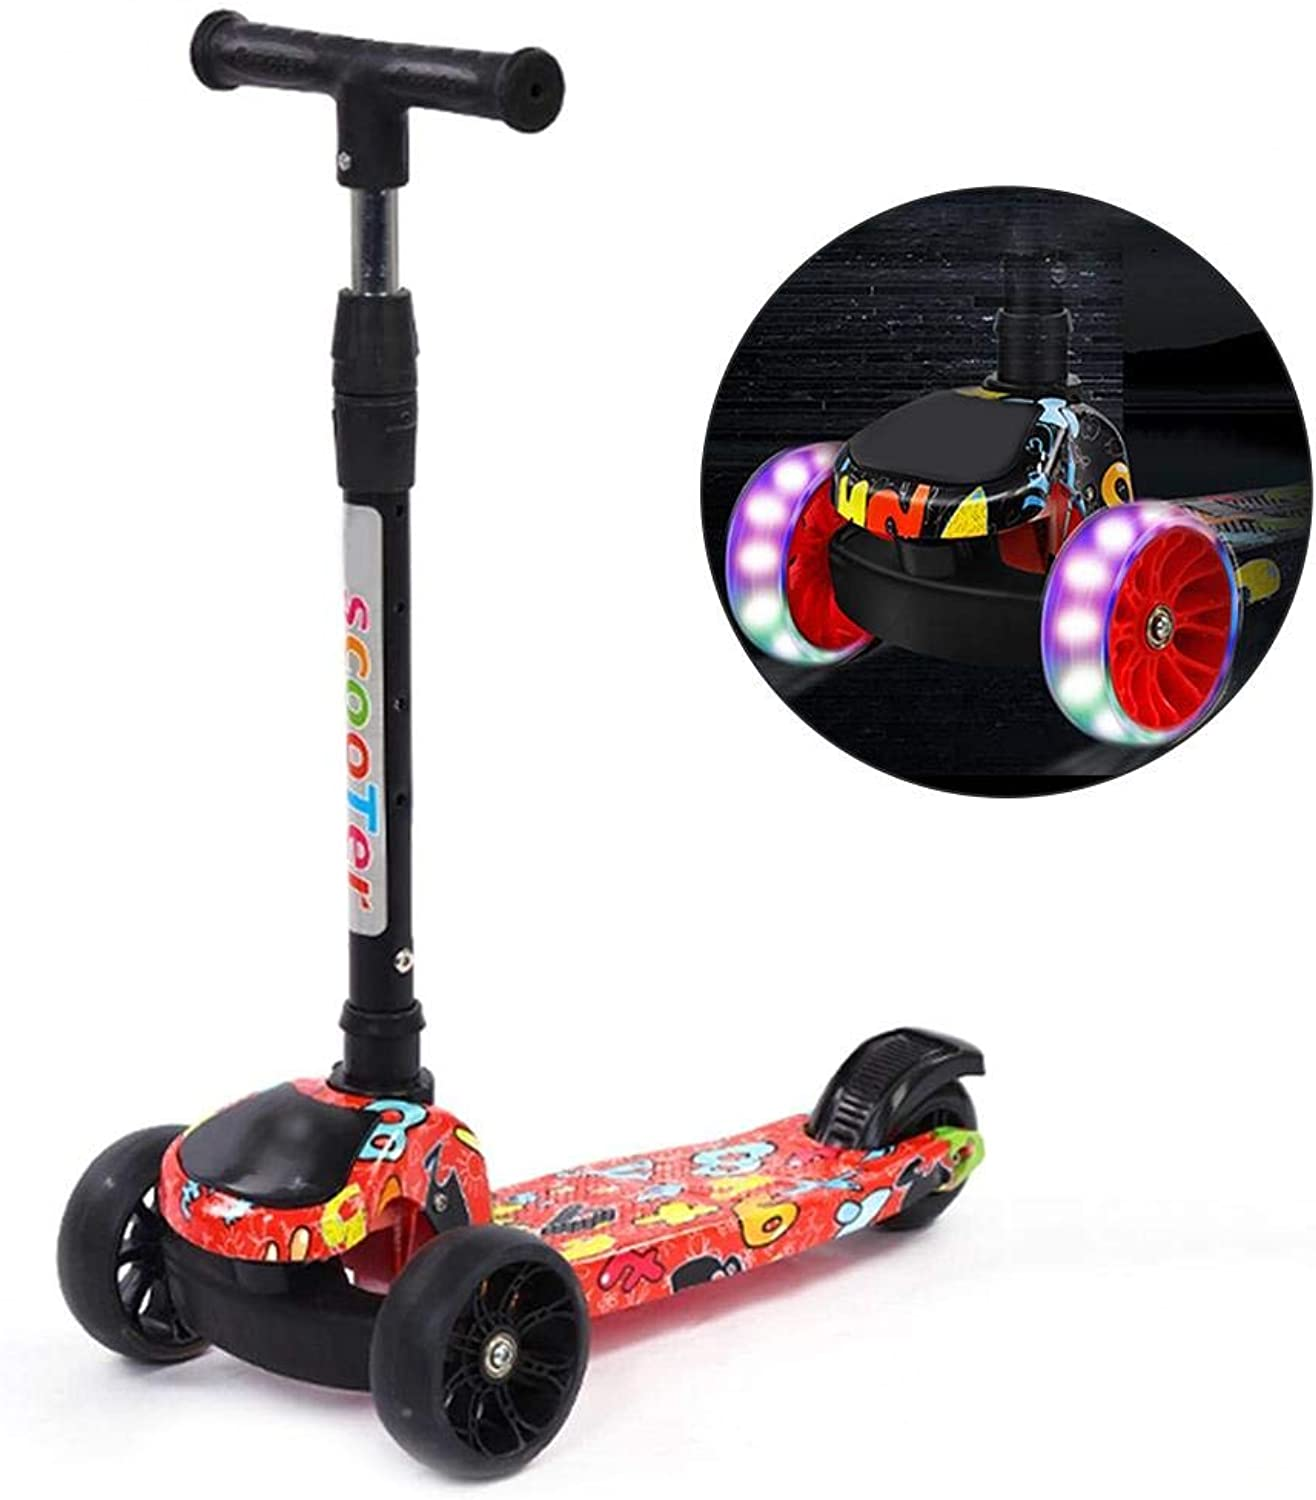 MultiFunction Folding Kick Scooter for Kids 3 Wheel Scooter for Toddler,for Ages 212,LED Light Up Wheels,Scooter Flashing Scooters